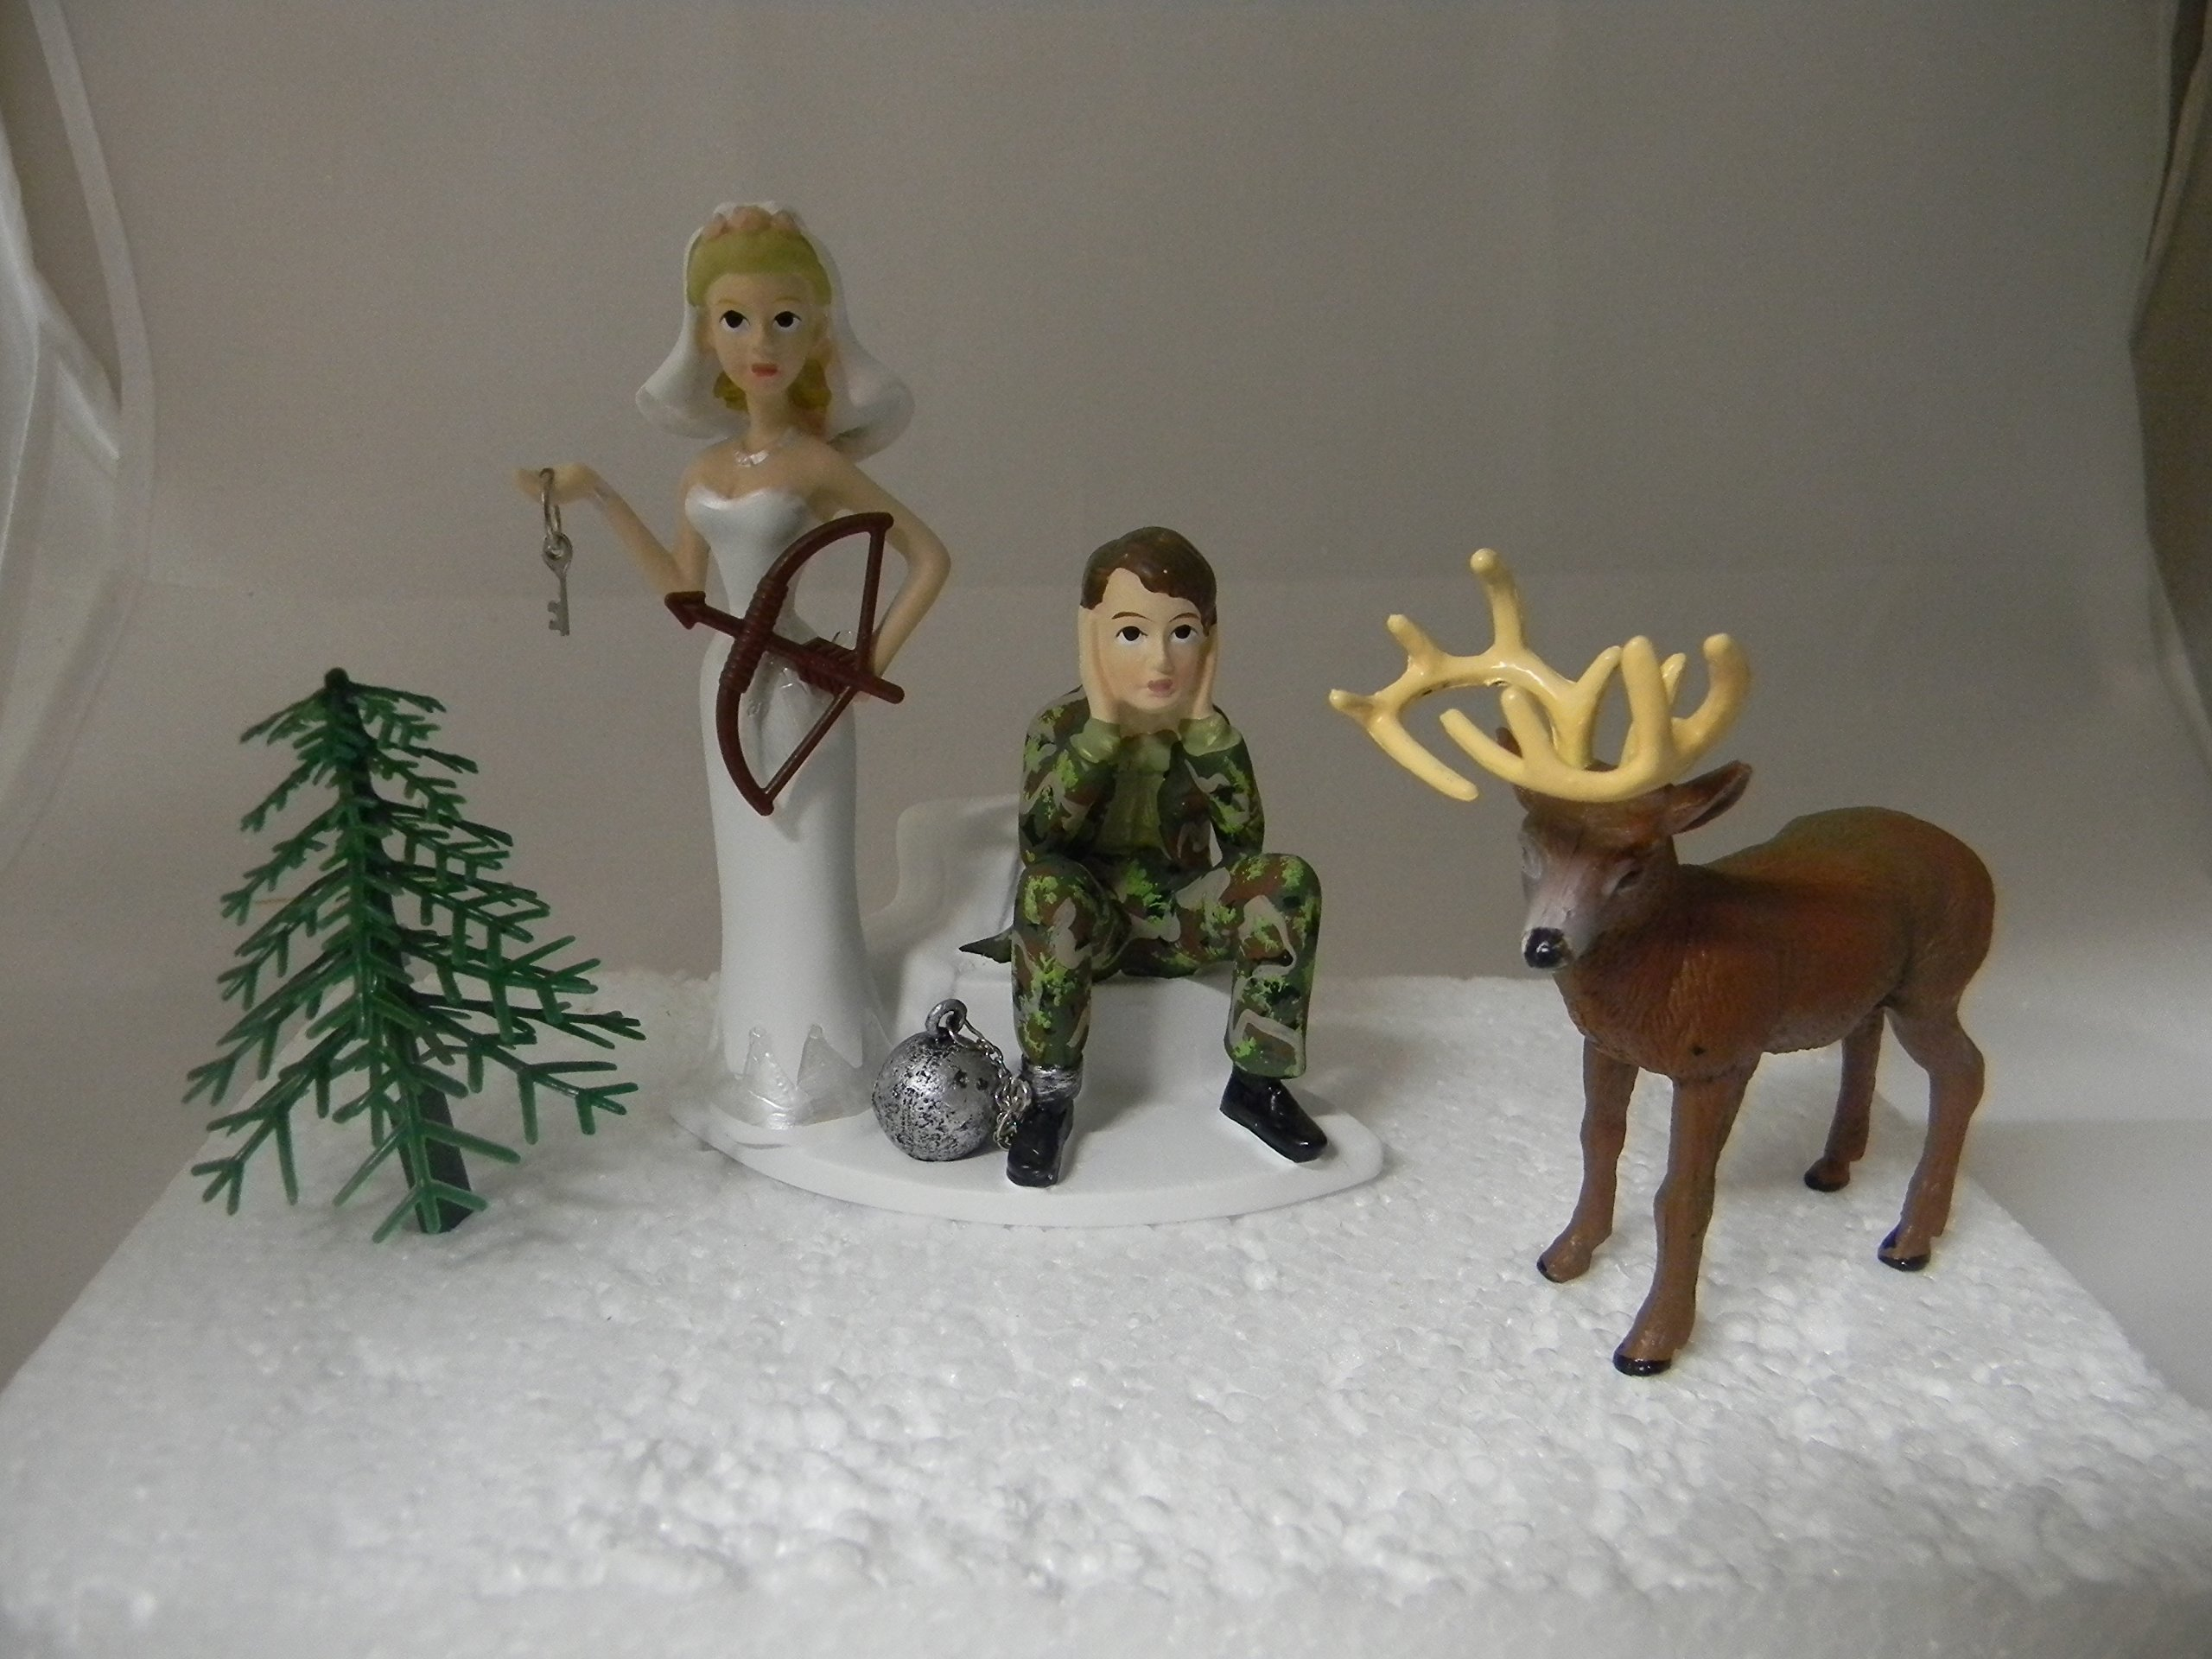 Wedding Party Reception Ball & Chain Camo Deer Bow Hunter Hunting Cake Topper